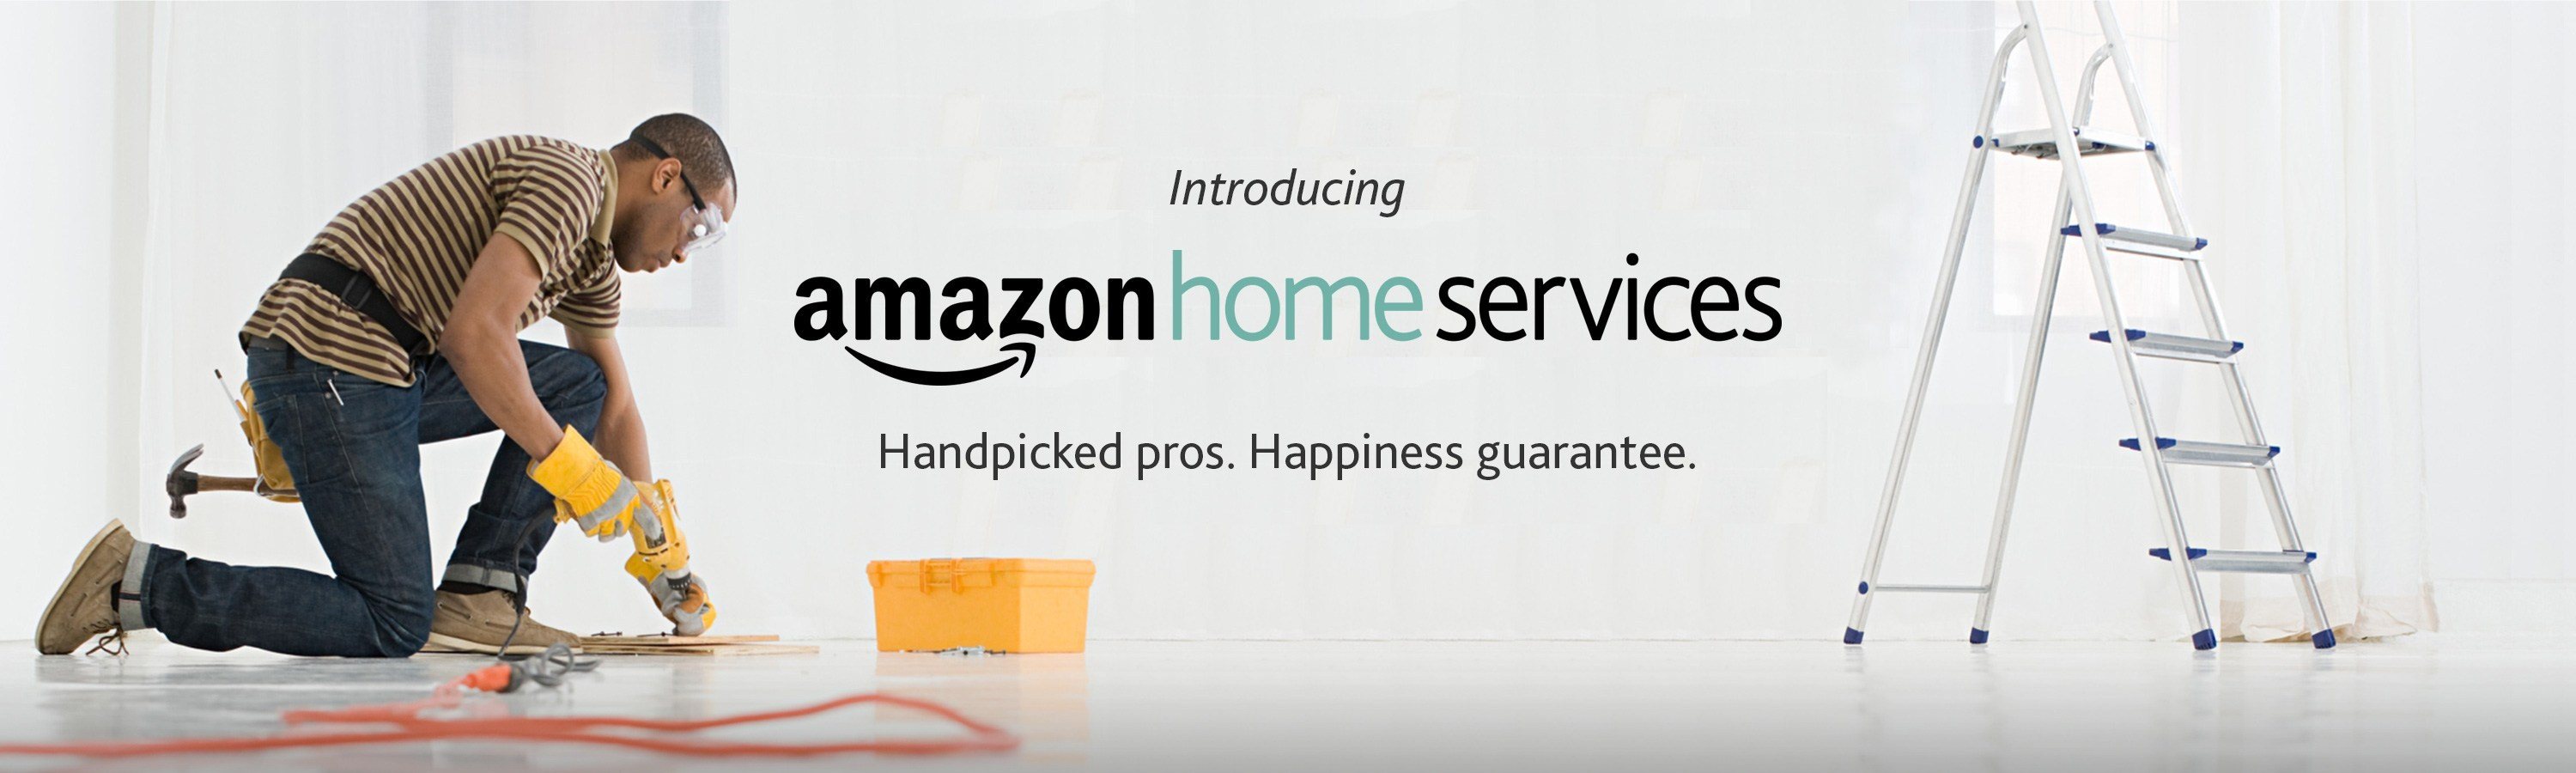 Amazon Home serivces marketplace